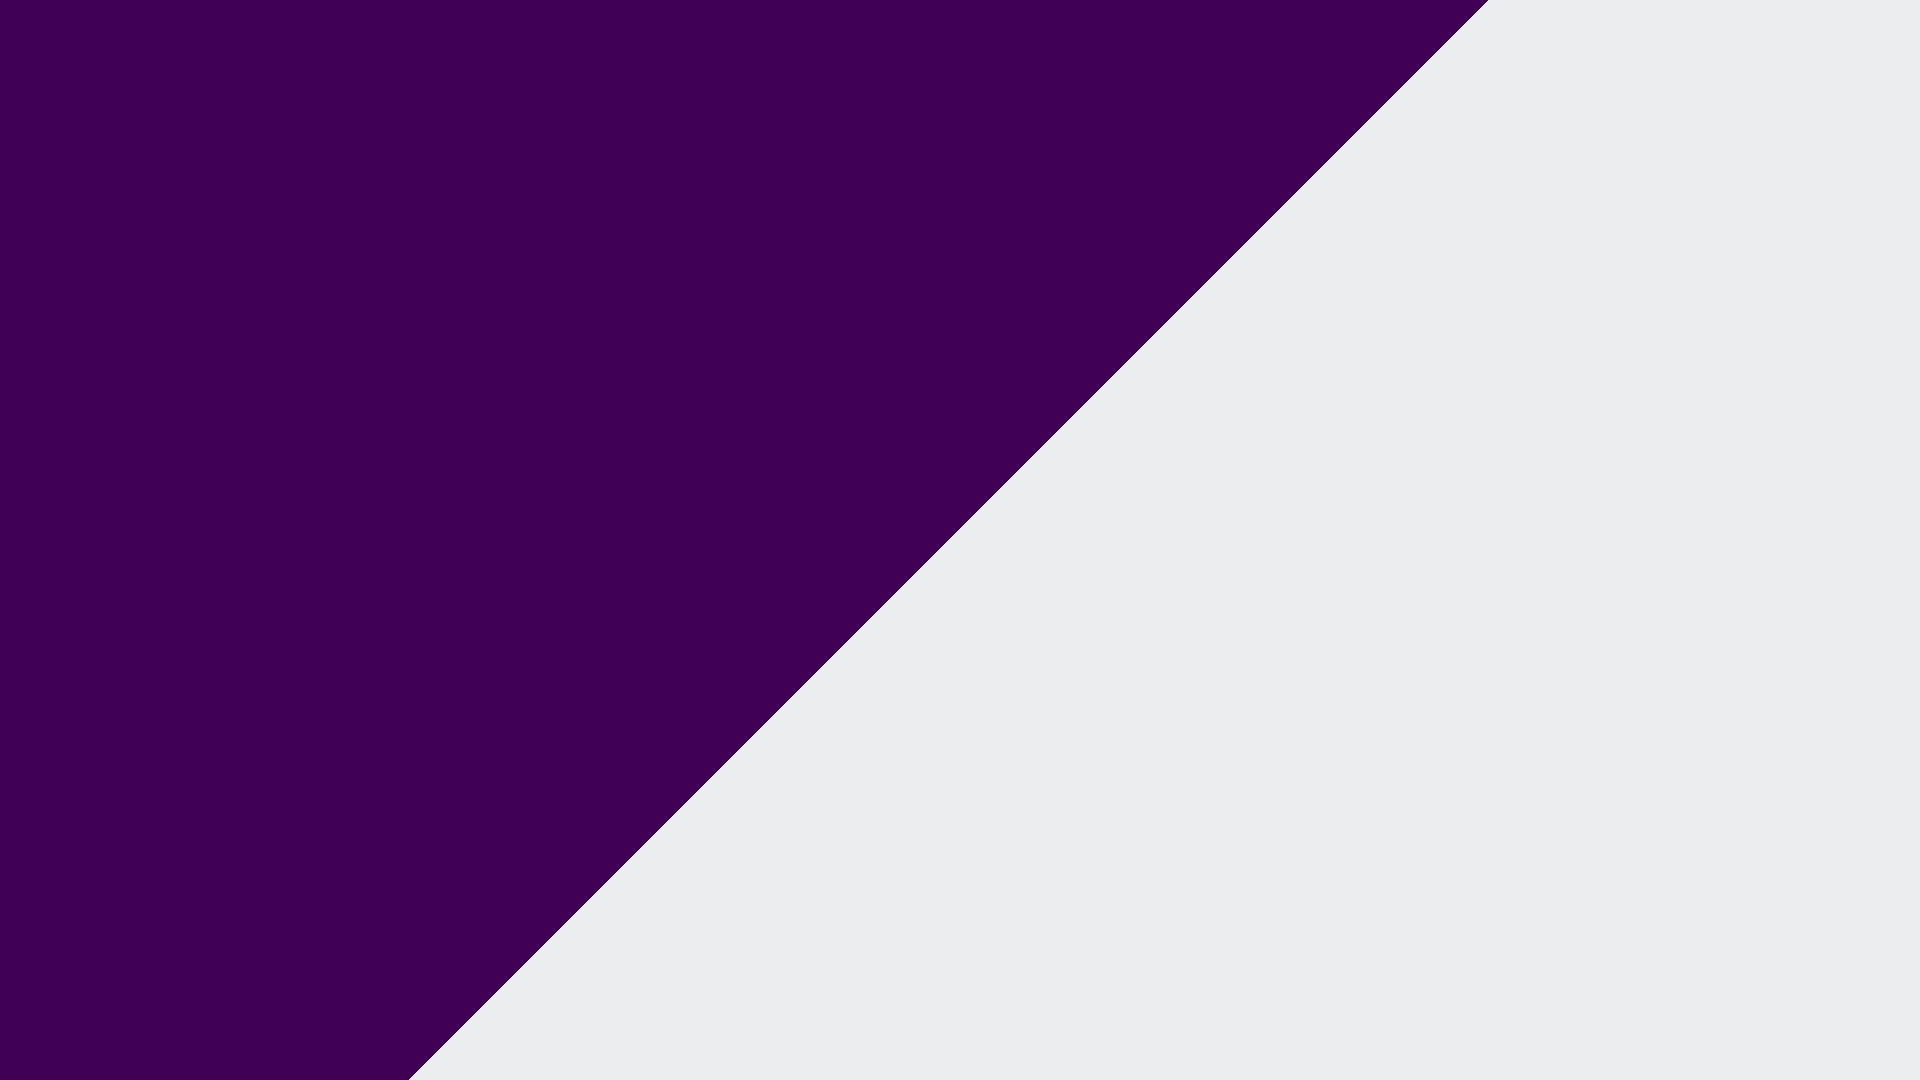 Purple and White Wallpaper - WallpaperSafari